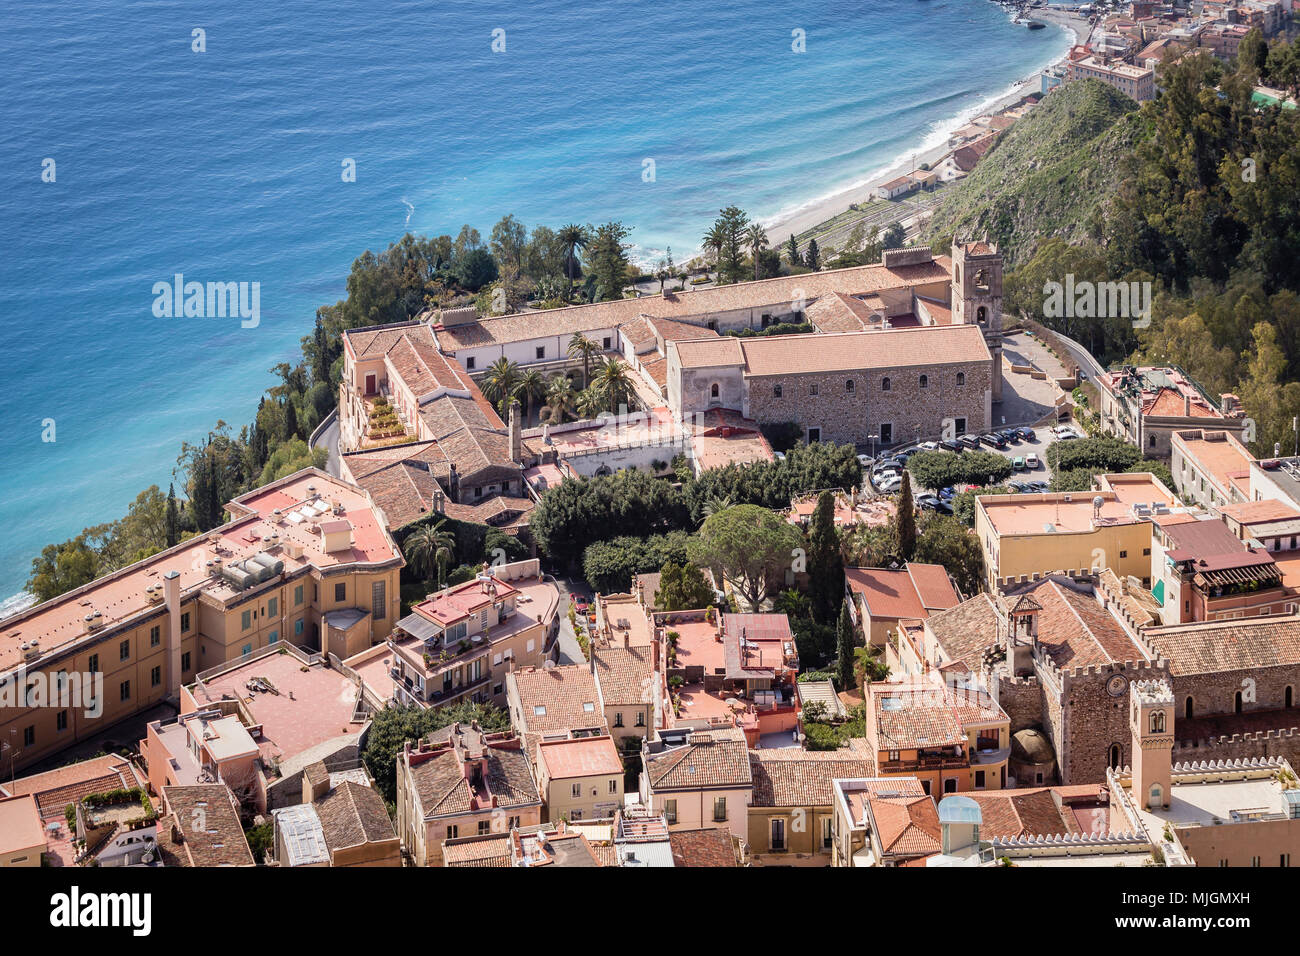 Taormina with San Domenico Palace Hotel, Sicily. - Stock Image